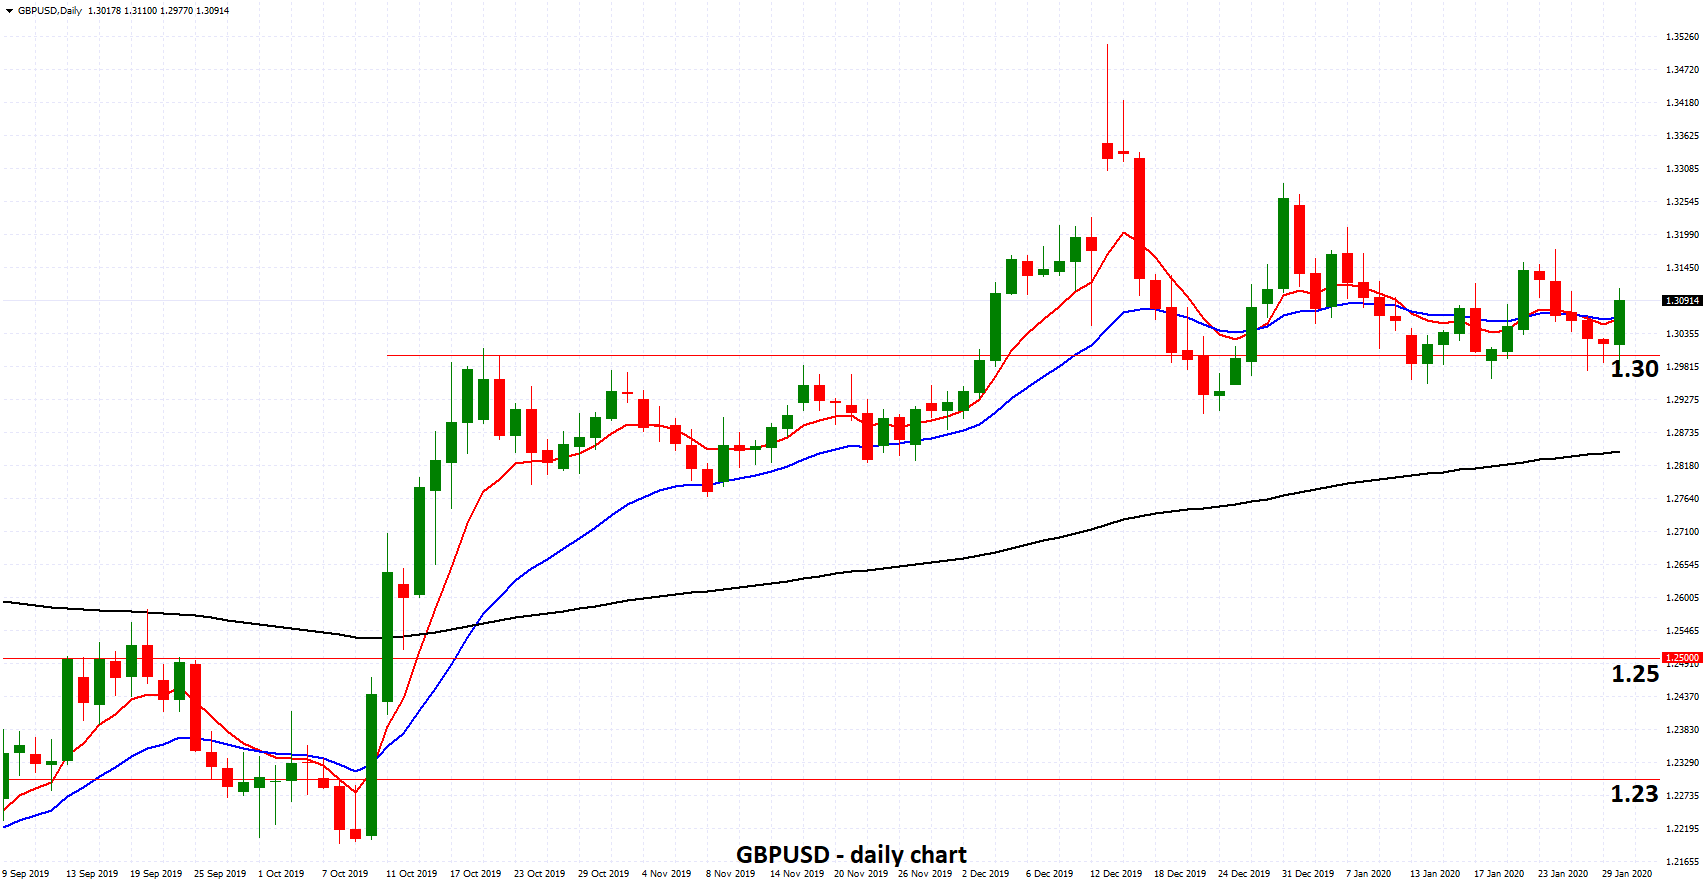 GBPUSD - Enjoys Strong Support from 1.30 as BOE Holds Rates